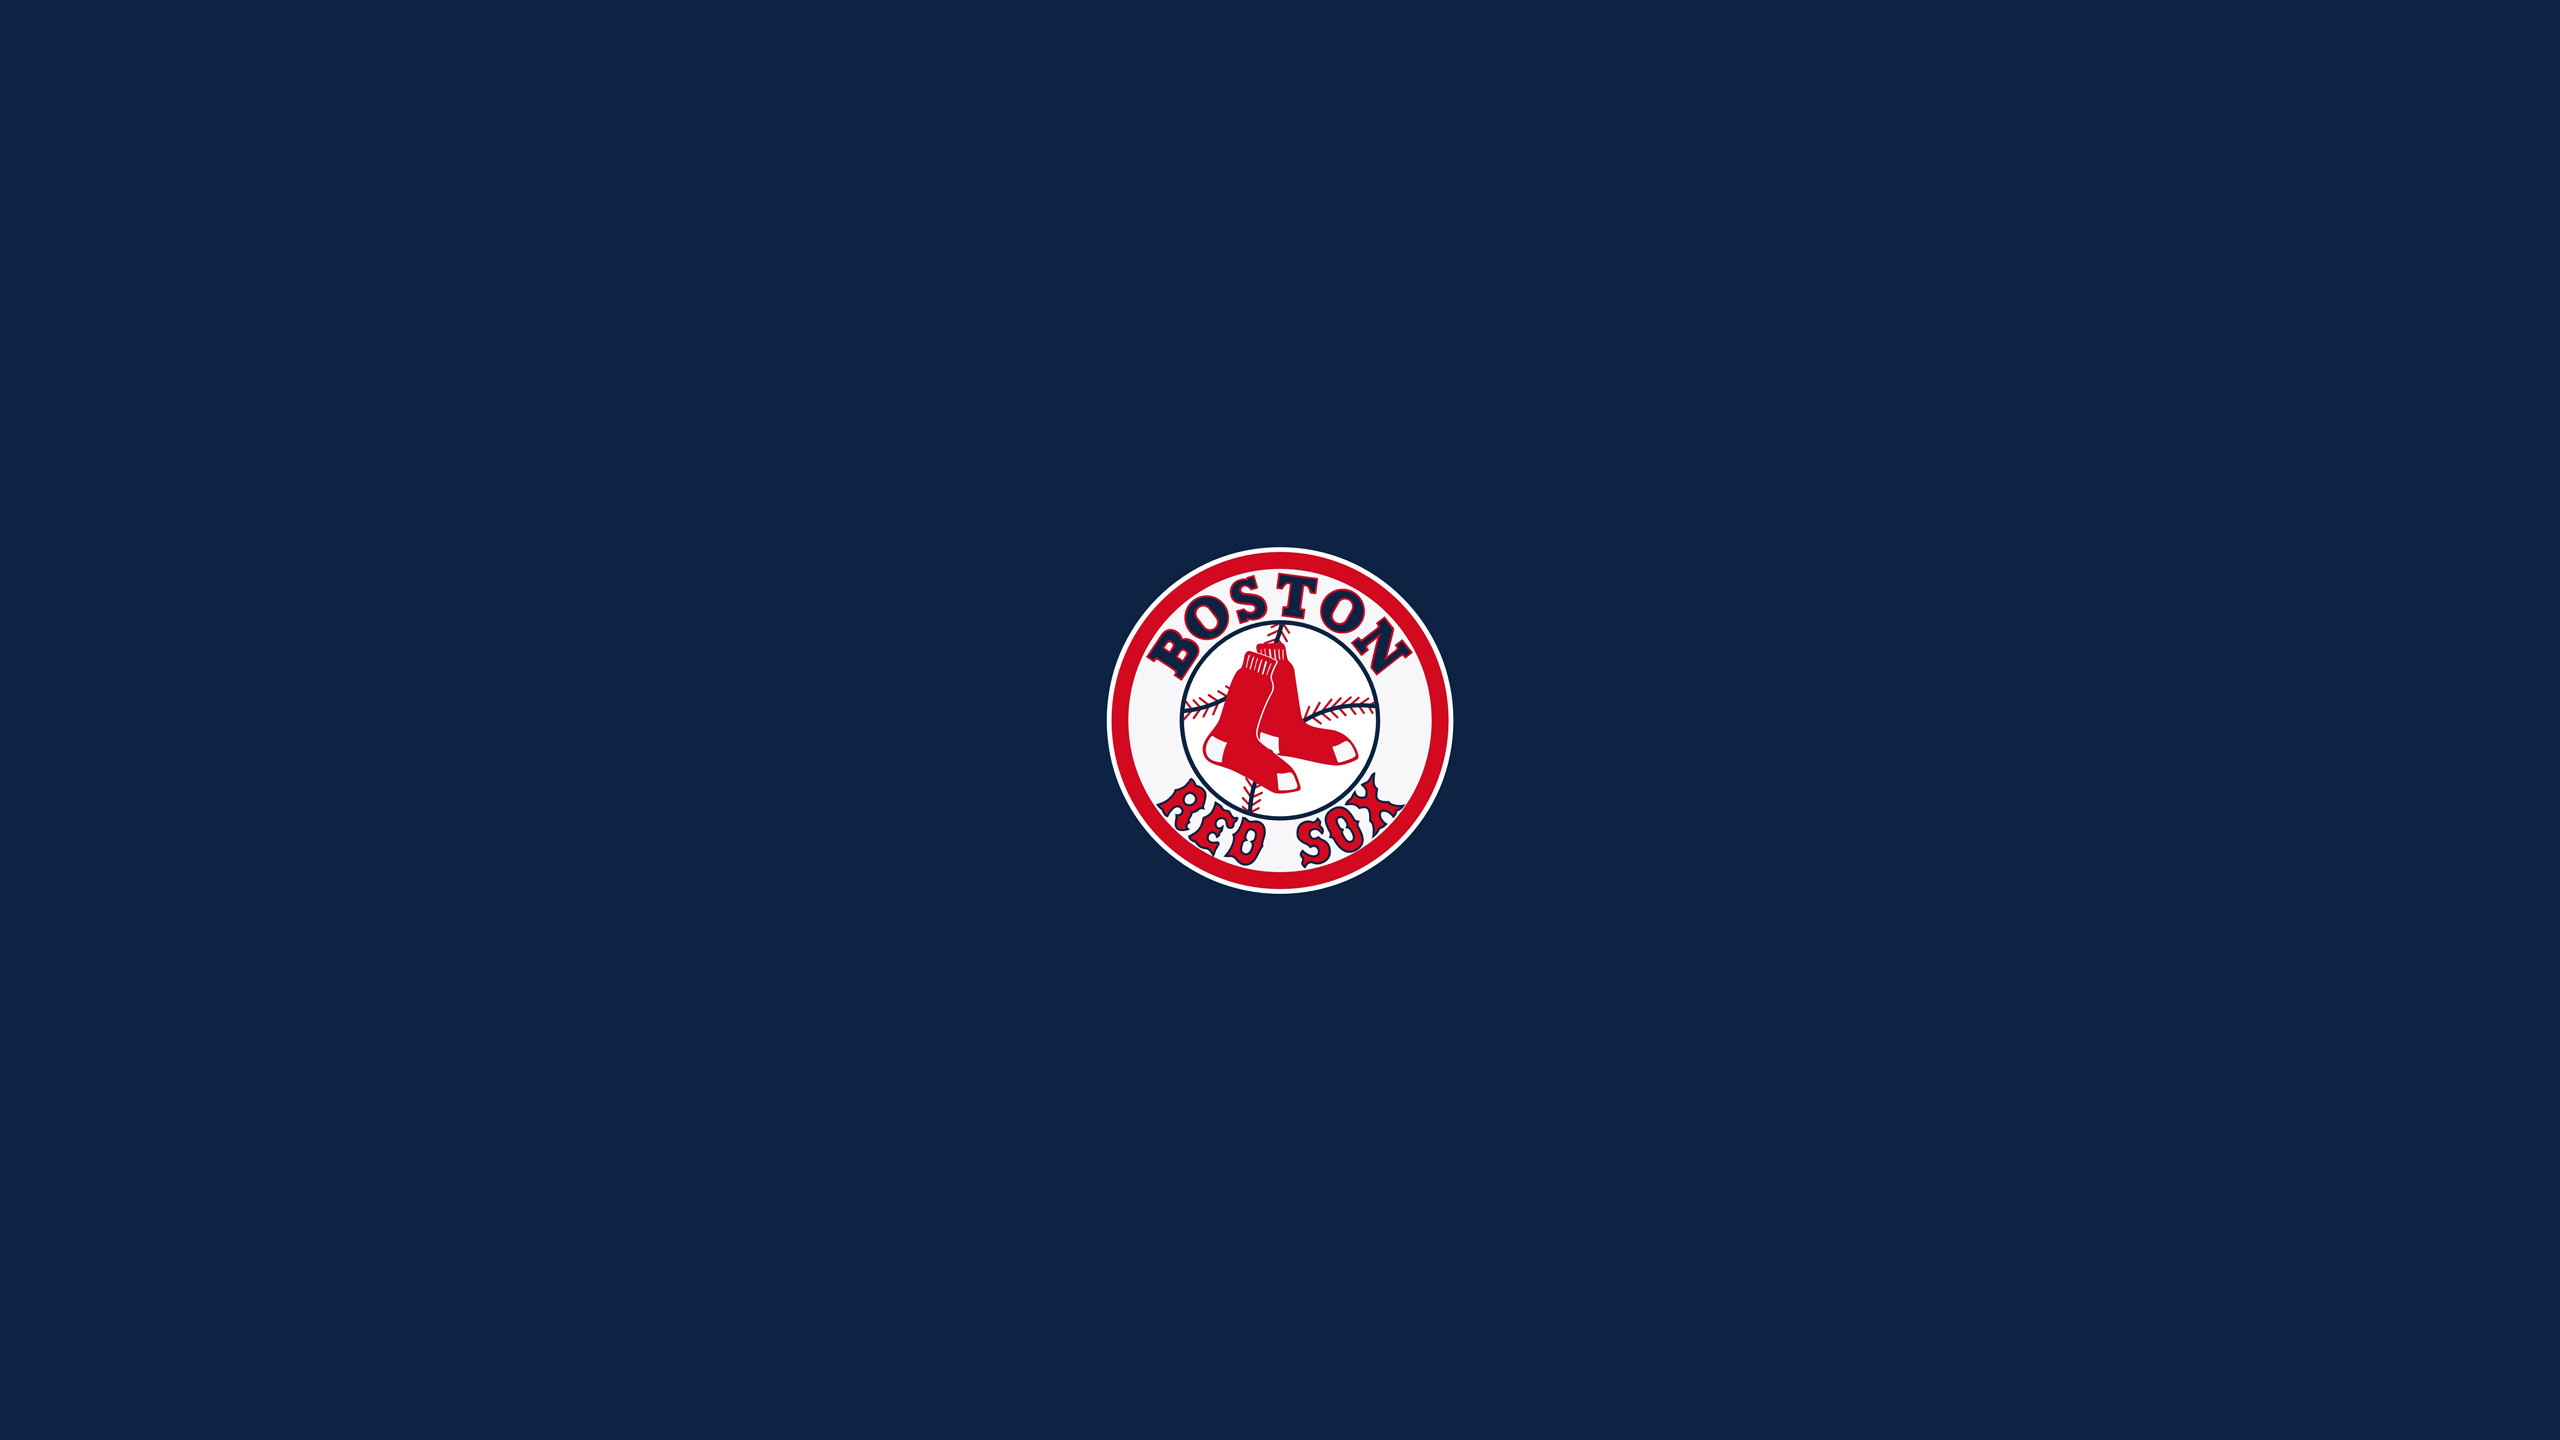 2560x1440 Red Sox Logo Wallpapers - Wallpaper Cave